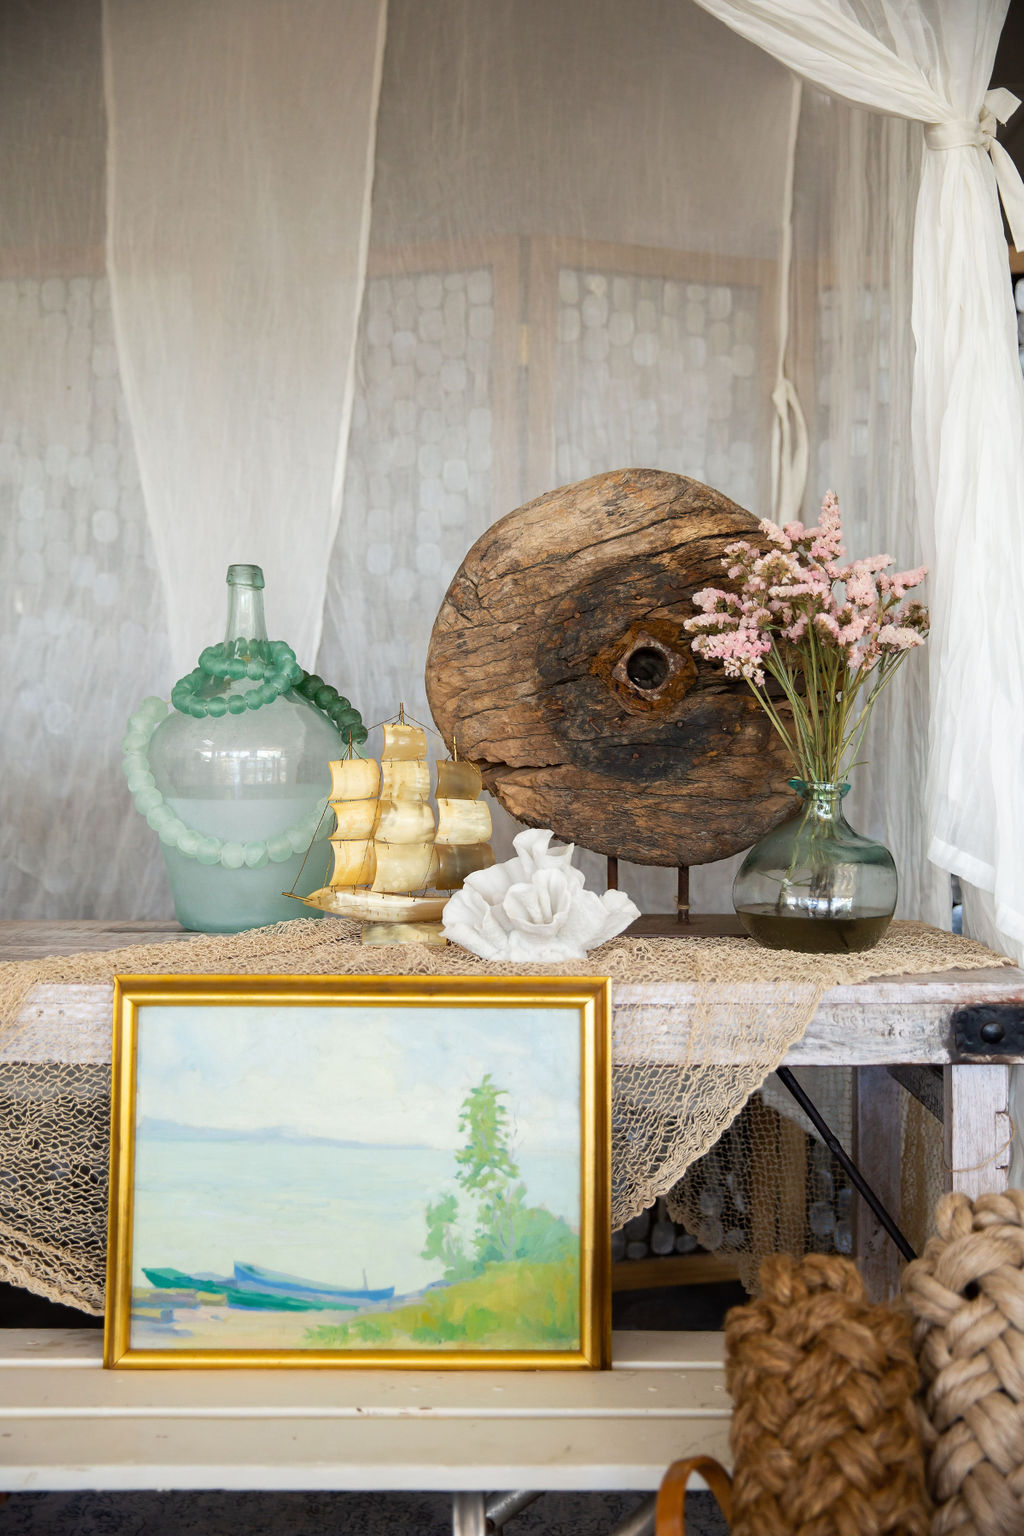 This may be favorite vignette of the bunch. There are two standout items here: an antique wood cart wheel sculpture, and landscape painting by Frederick Frary Fursman dating back to the early 20th century.